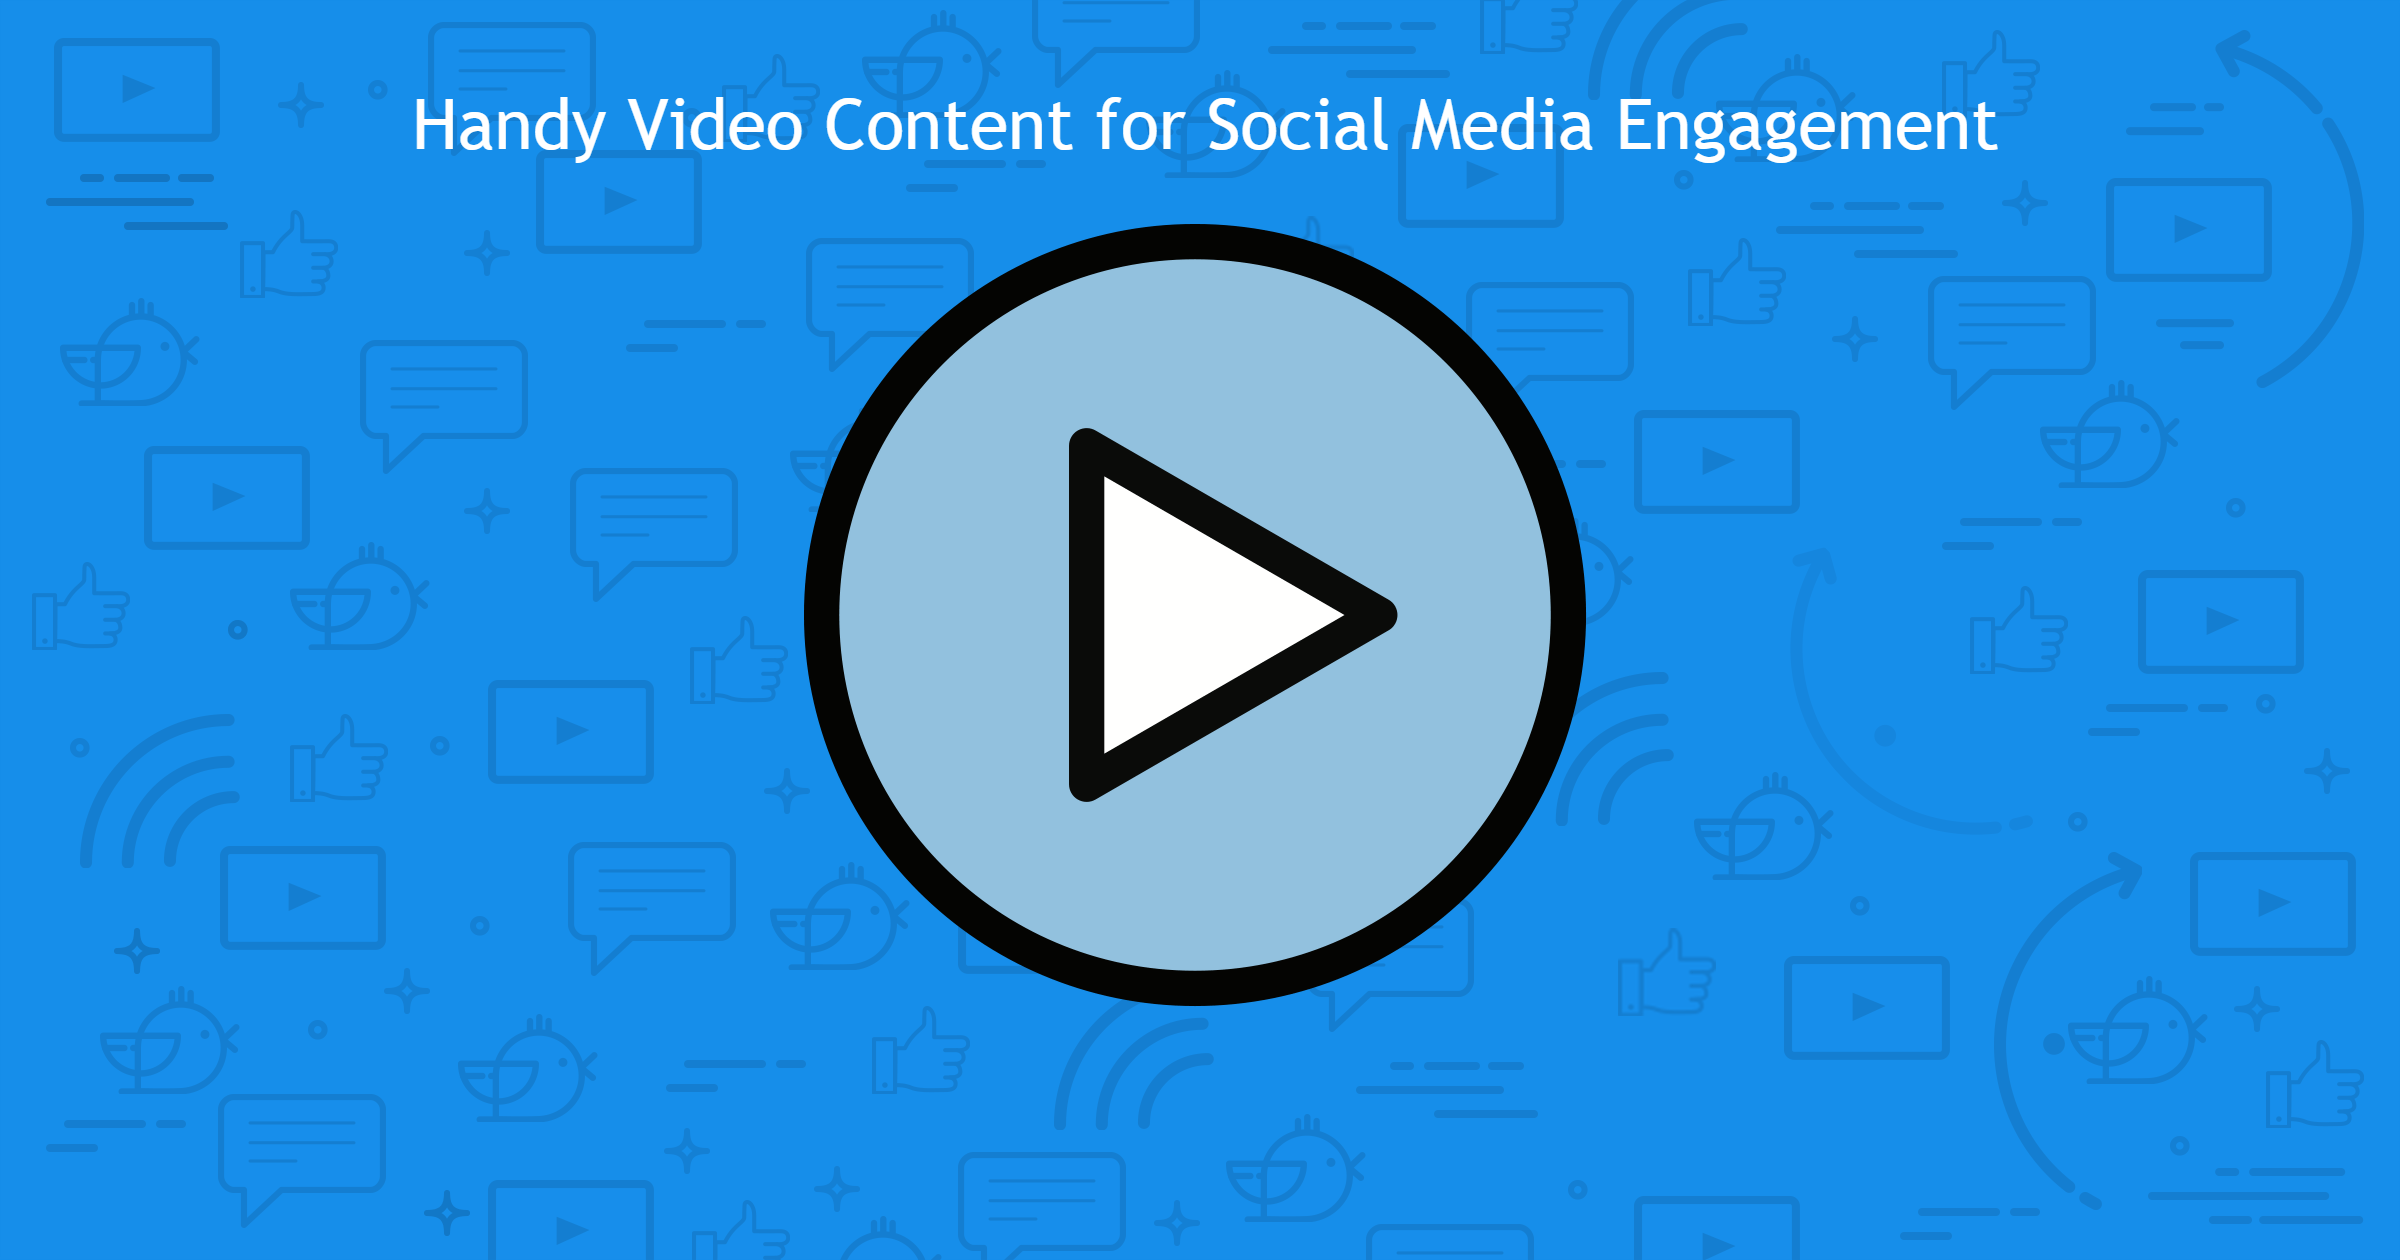 Handy Video Content for Social Media Marketing